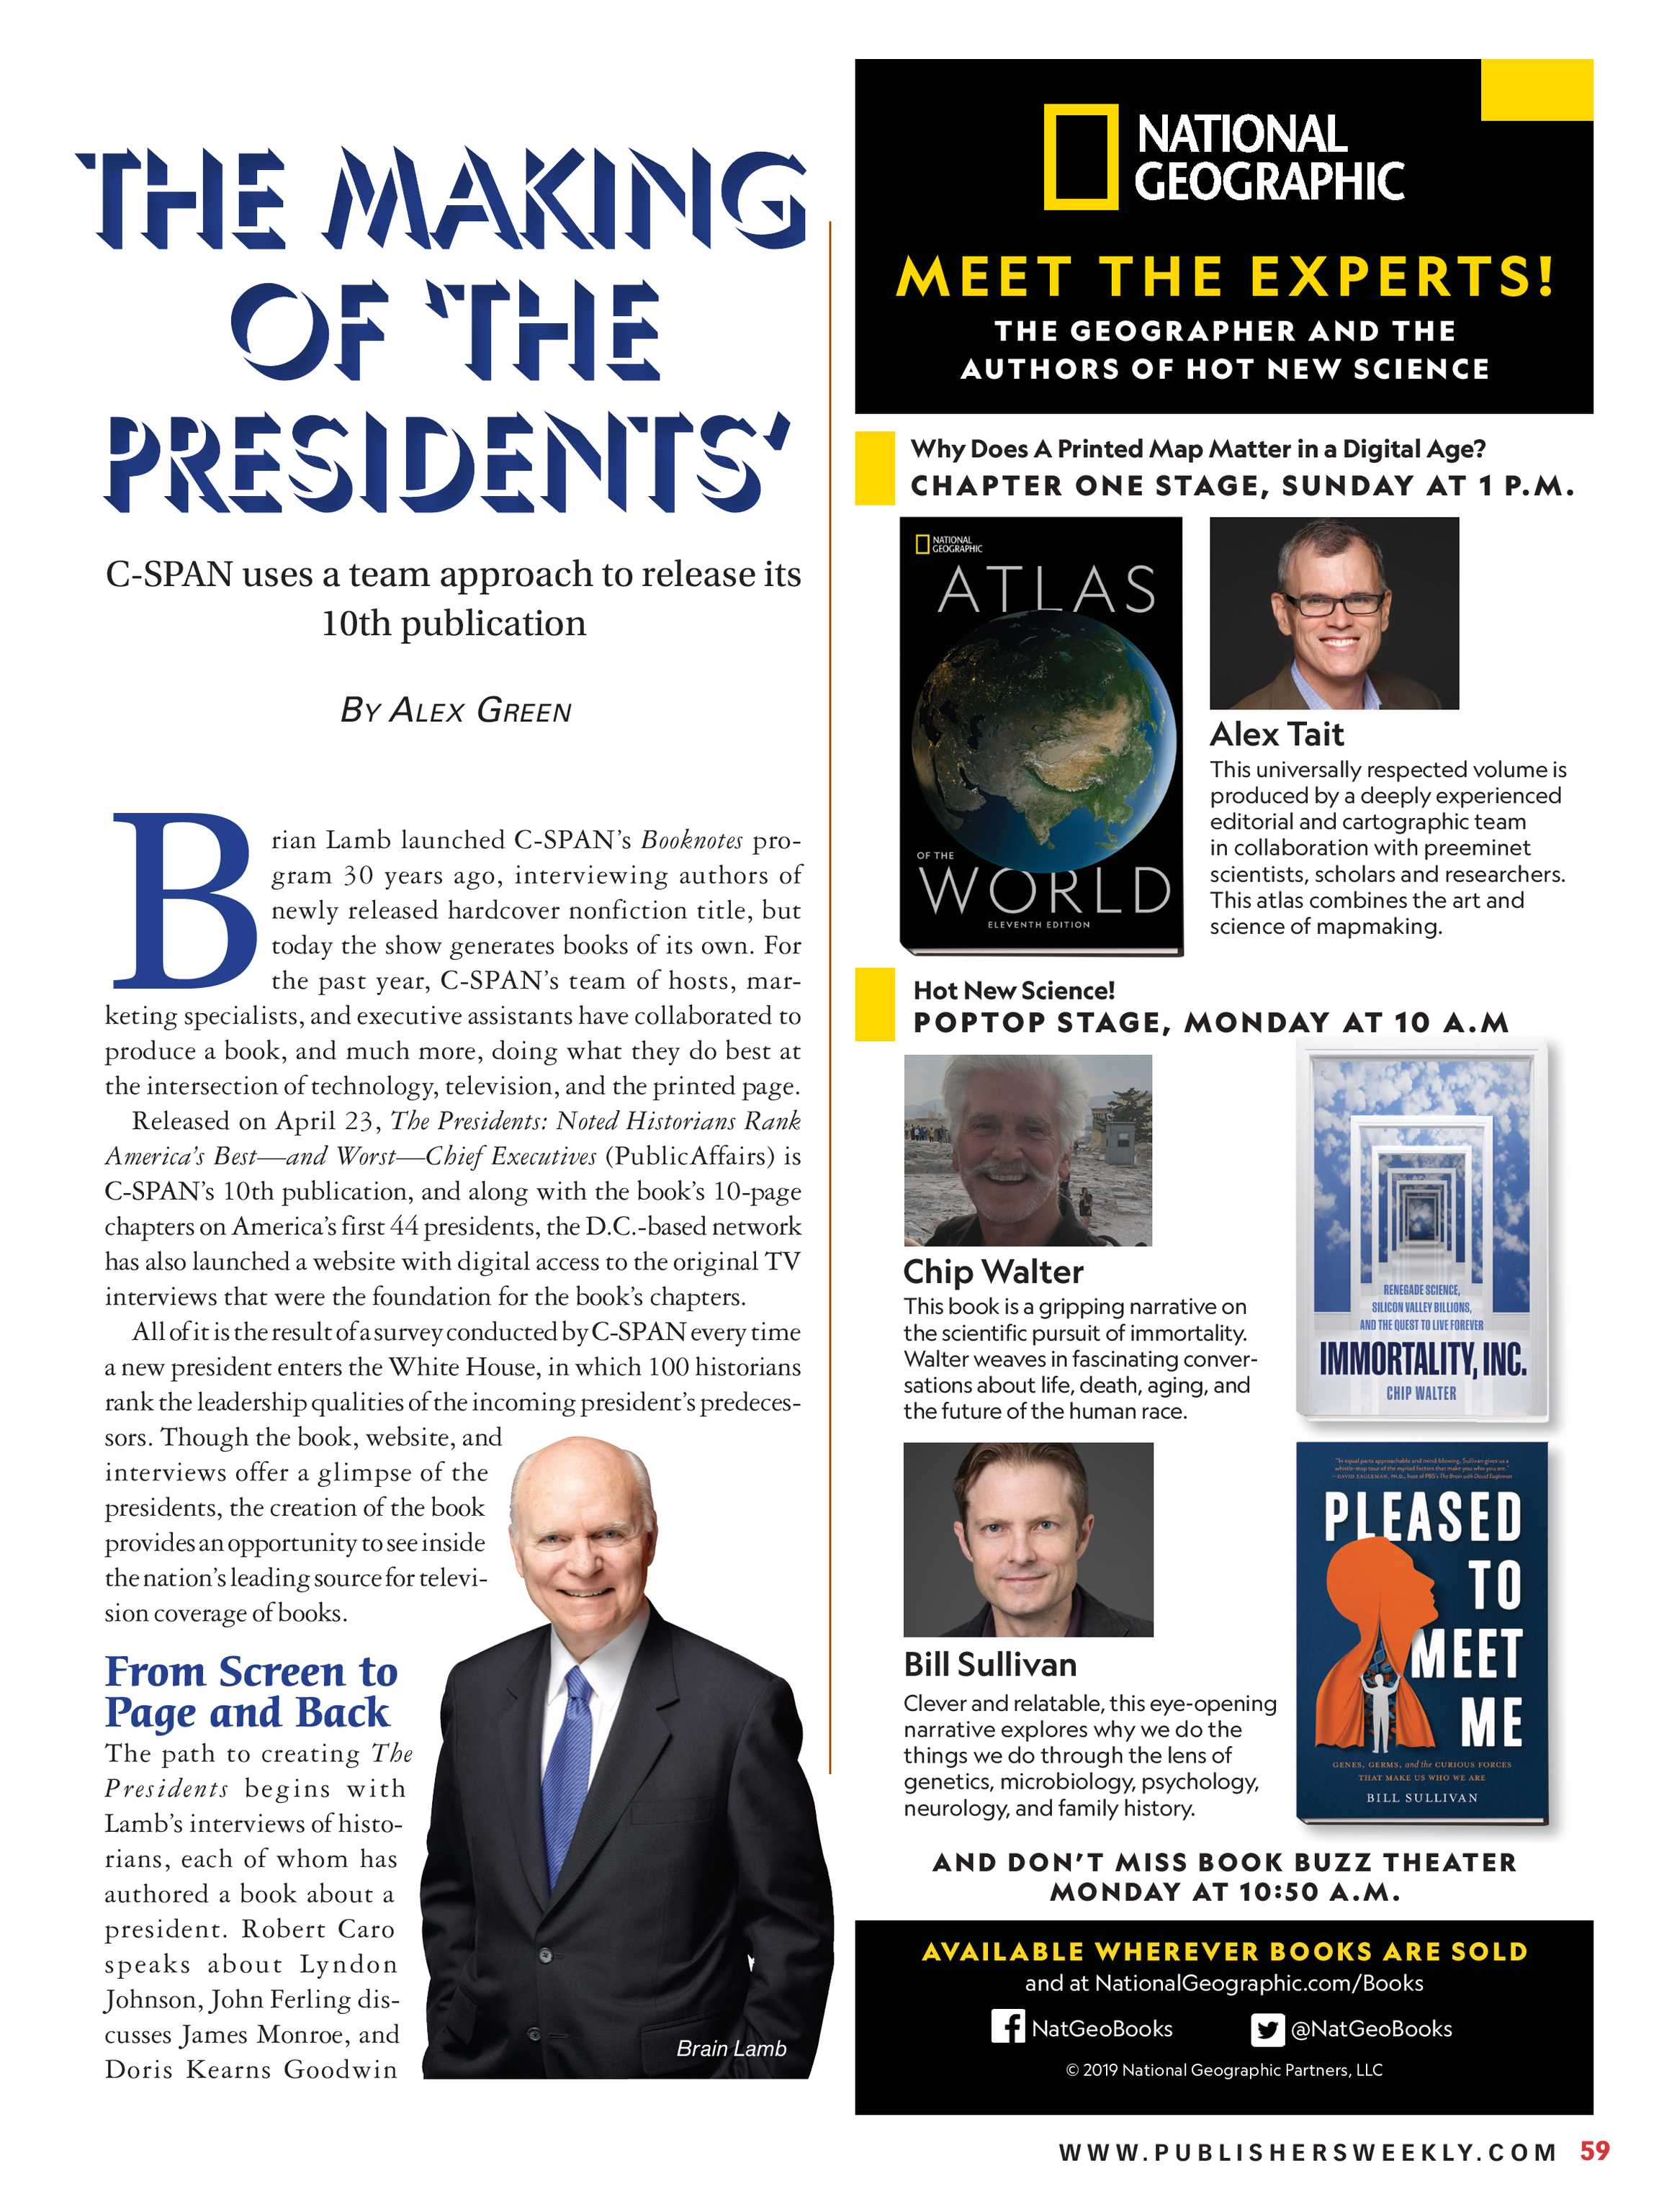 Publishers Weekly - June 10, 2019 - page 59